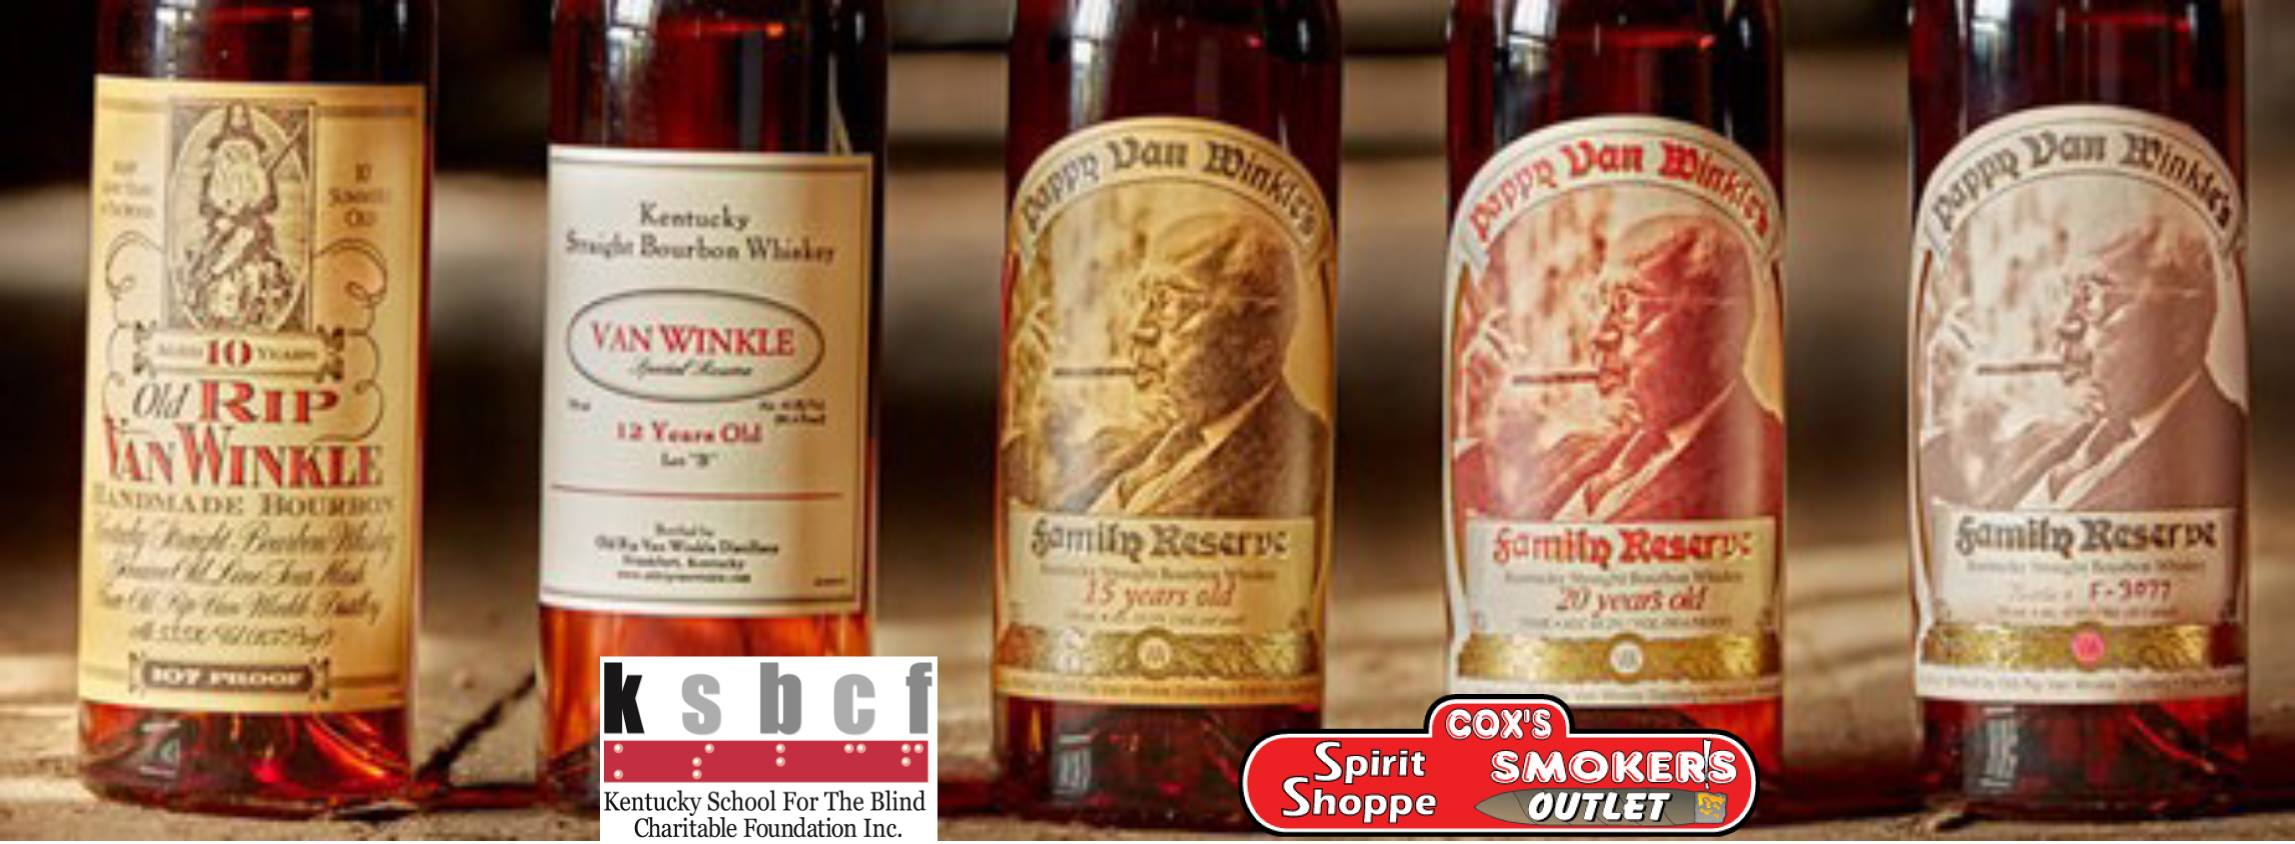 5 Pappy Van Winkle Bourbon bottles raffle flyer